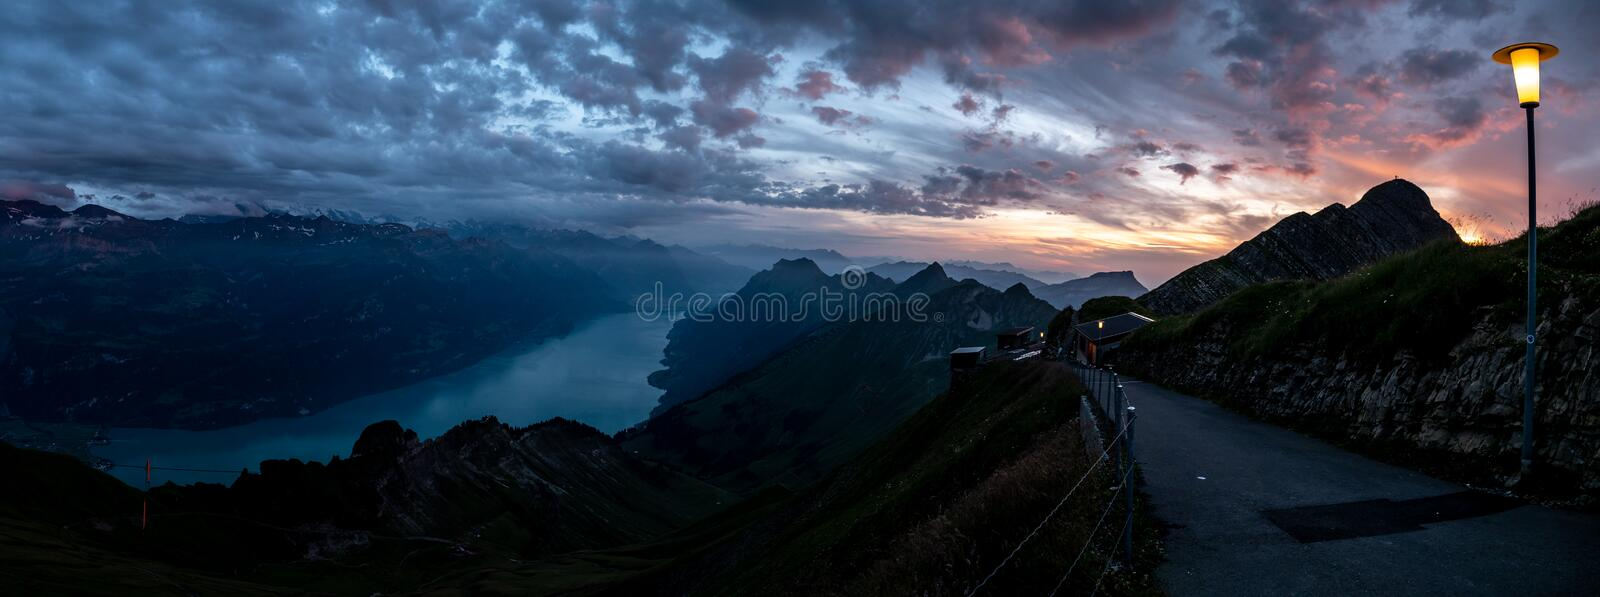 wide panorama view of mountain range during dramatic snuset from the brienzer rothorn in the swiss alps royalty free stock photography